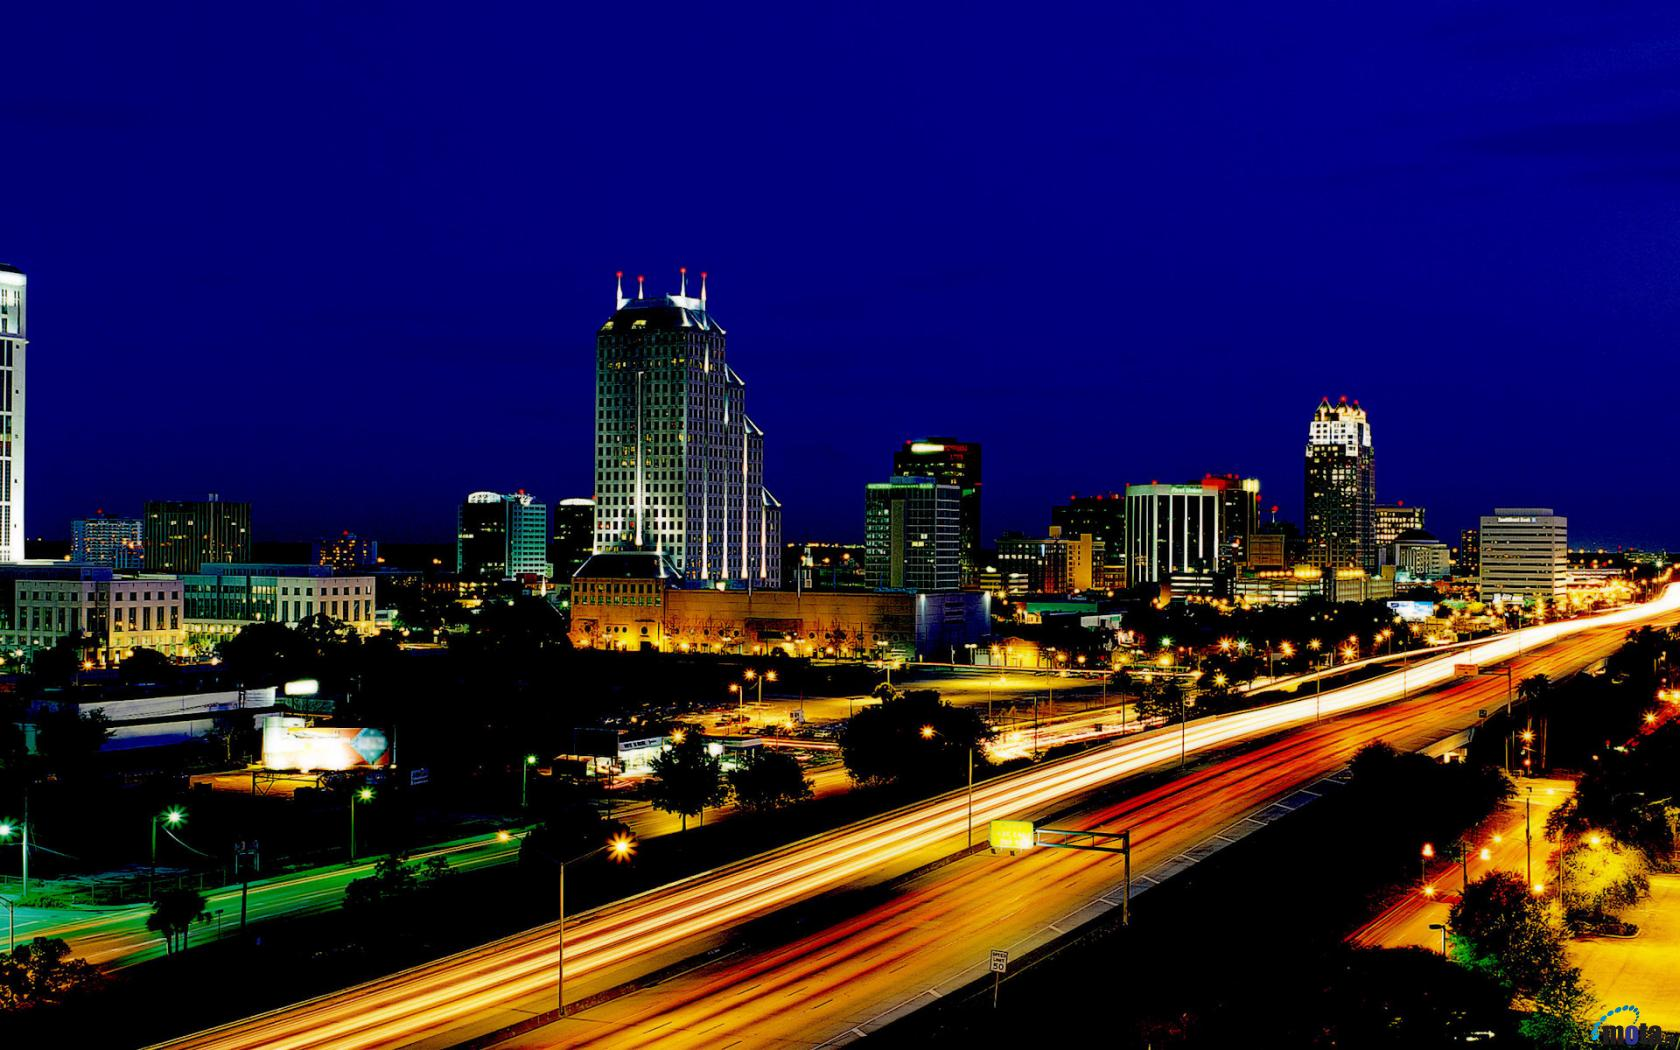 Download Wallpaper Orlando by night Florida 1680 x 1050 widescreen 1680x1050